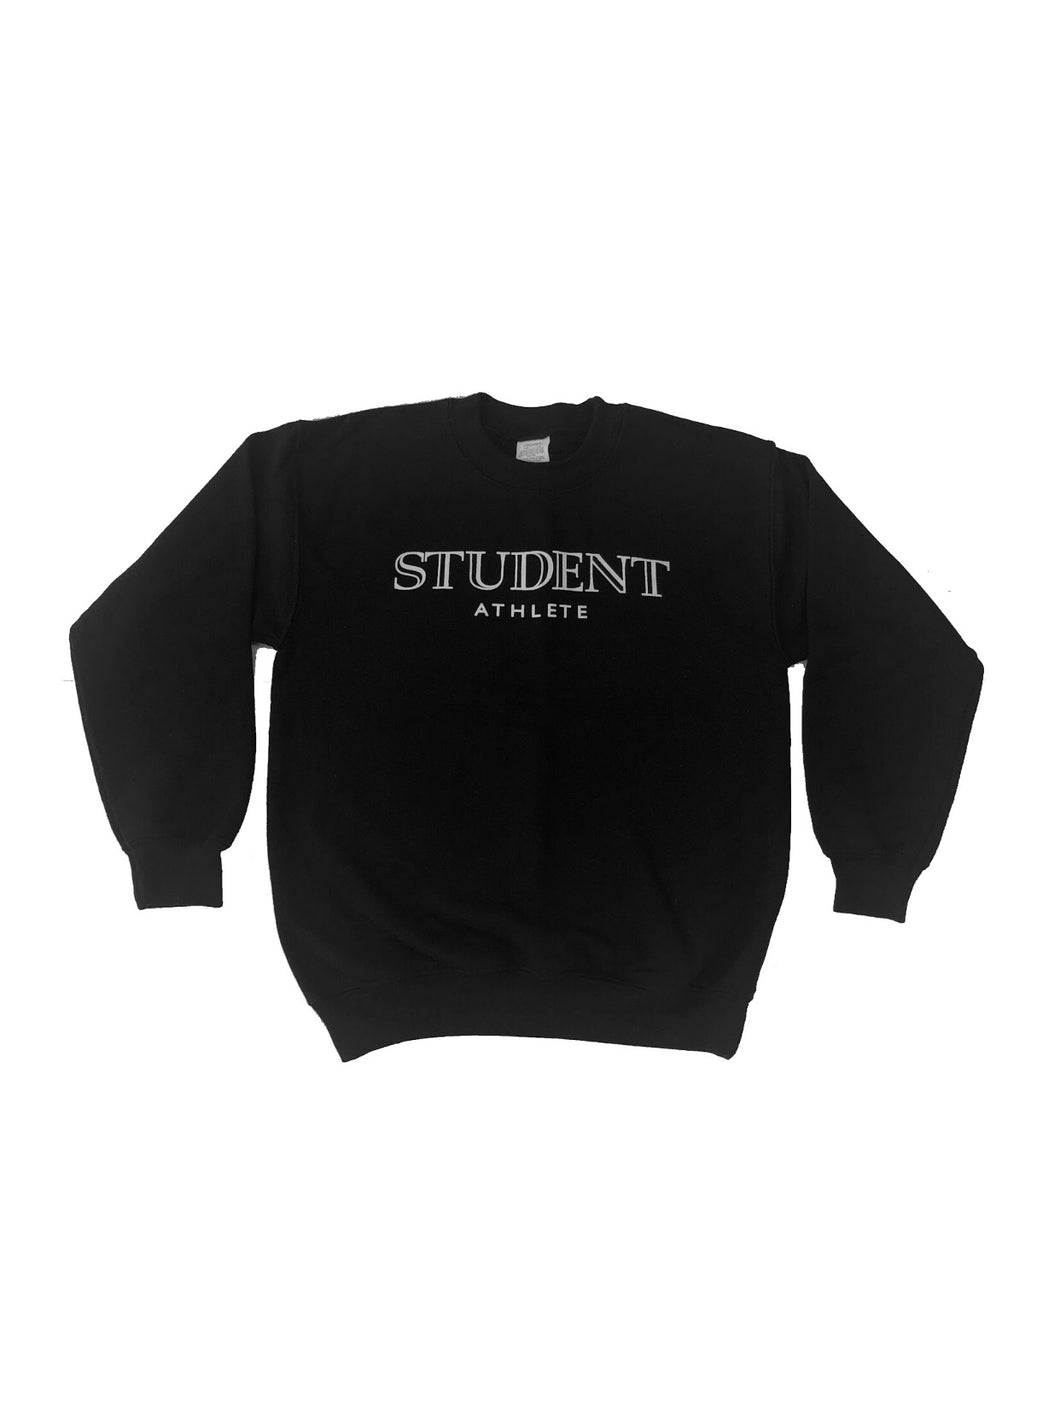 Student Athlete Crewneck (Black)